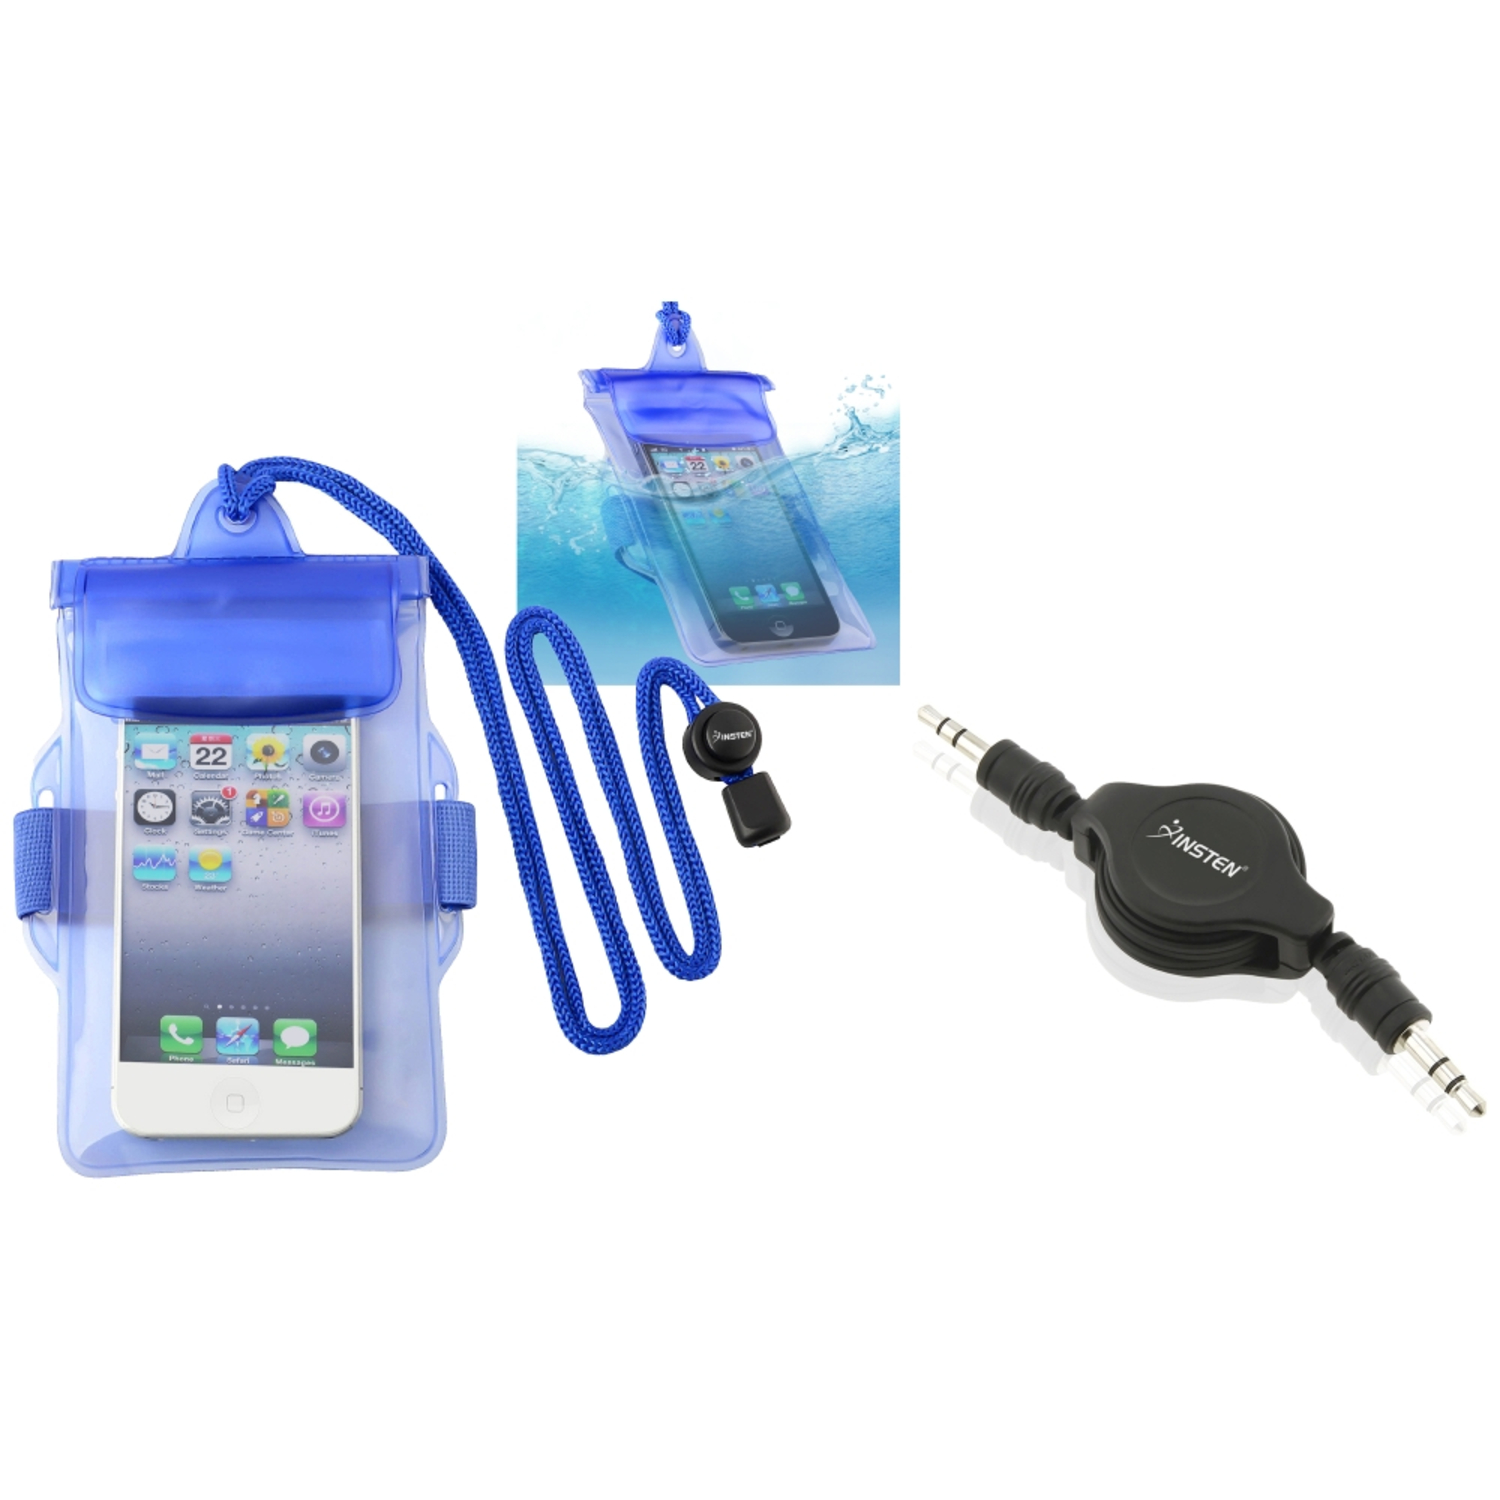 Insten Black Audio Cable+Blue Waterproof Bag Case for Samsung Galaxy S II i9100 Attain